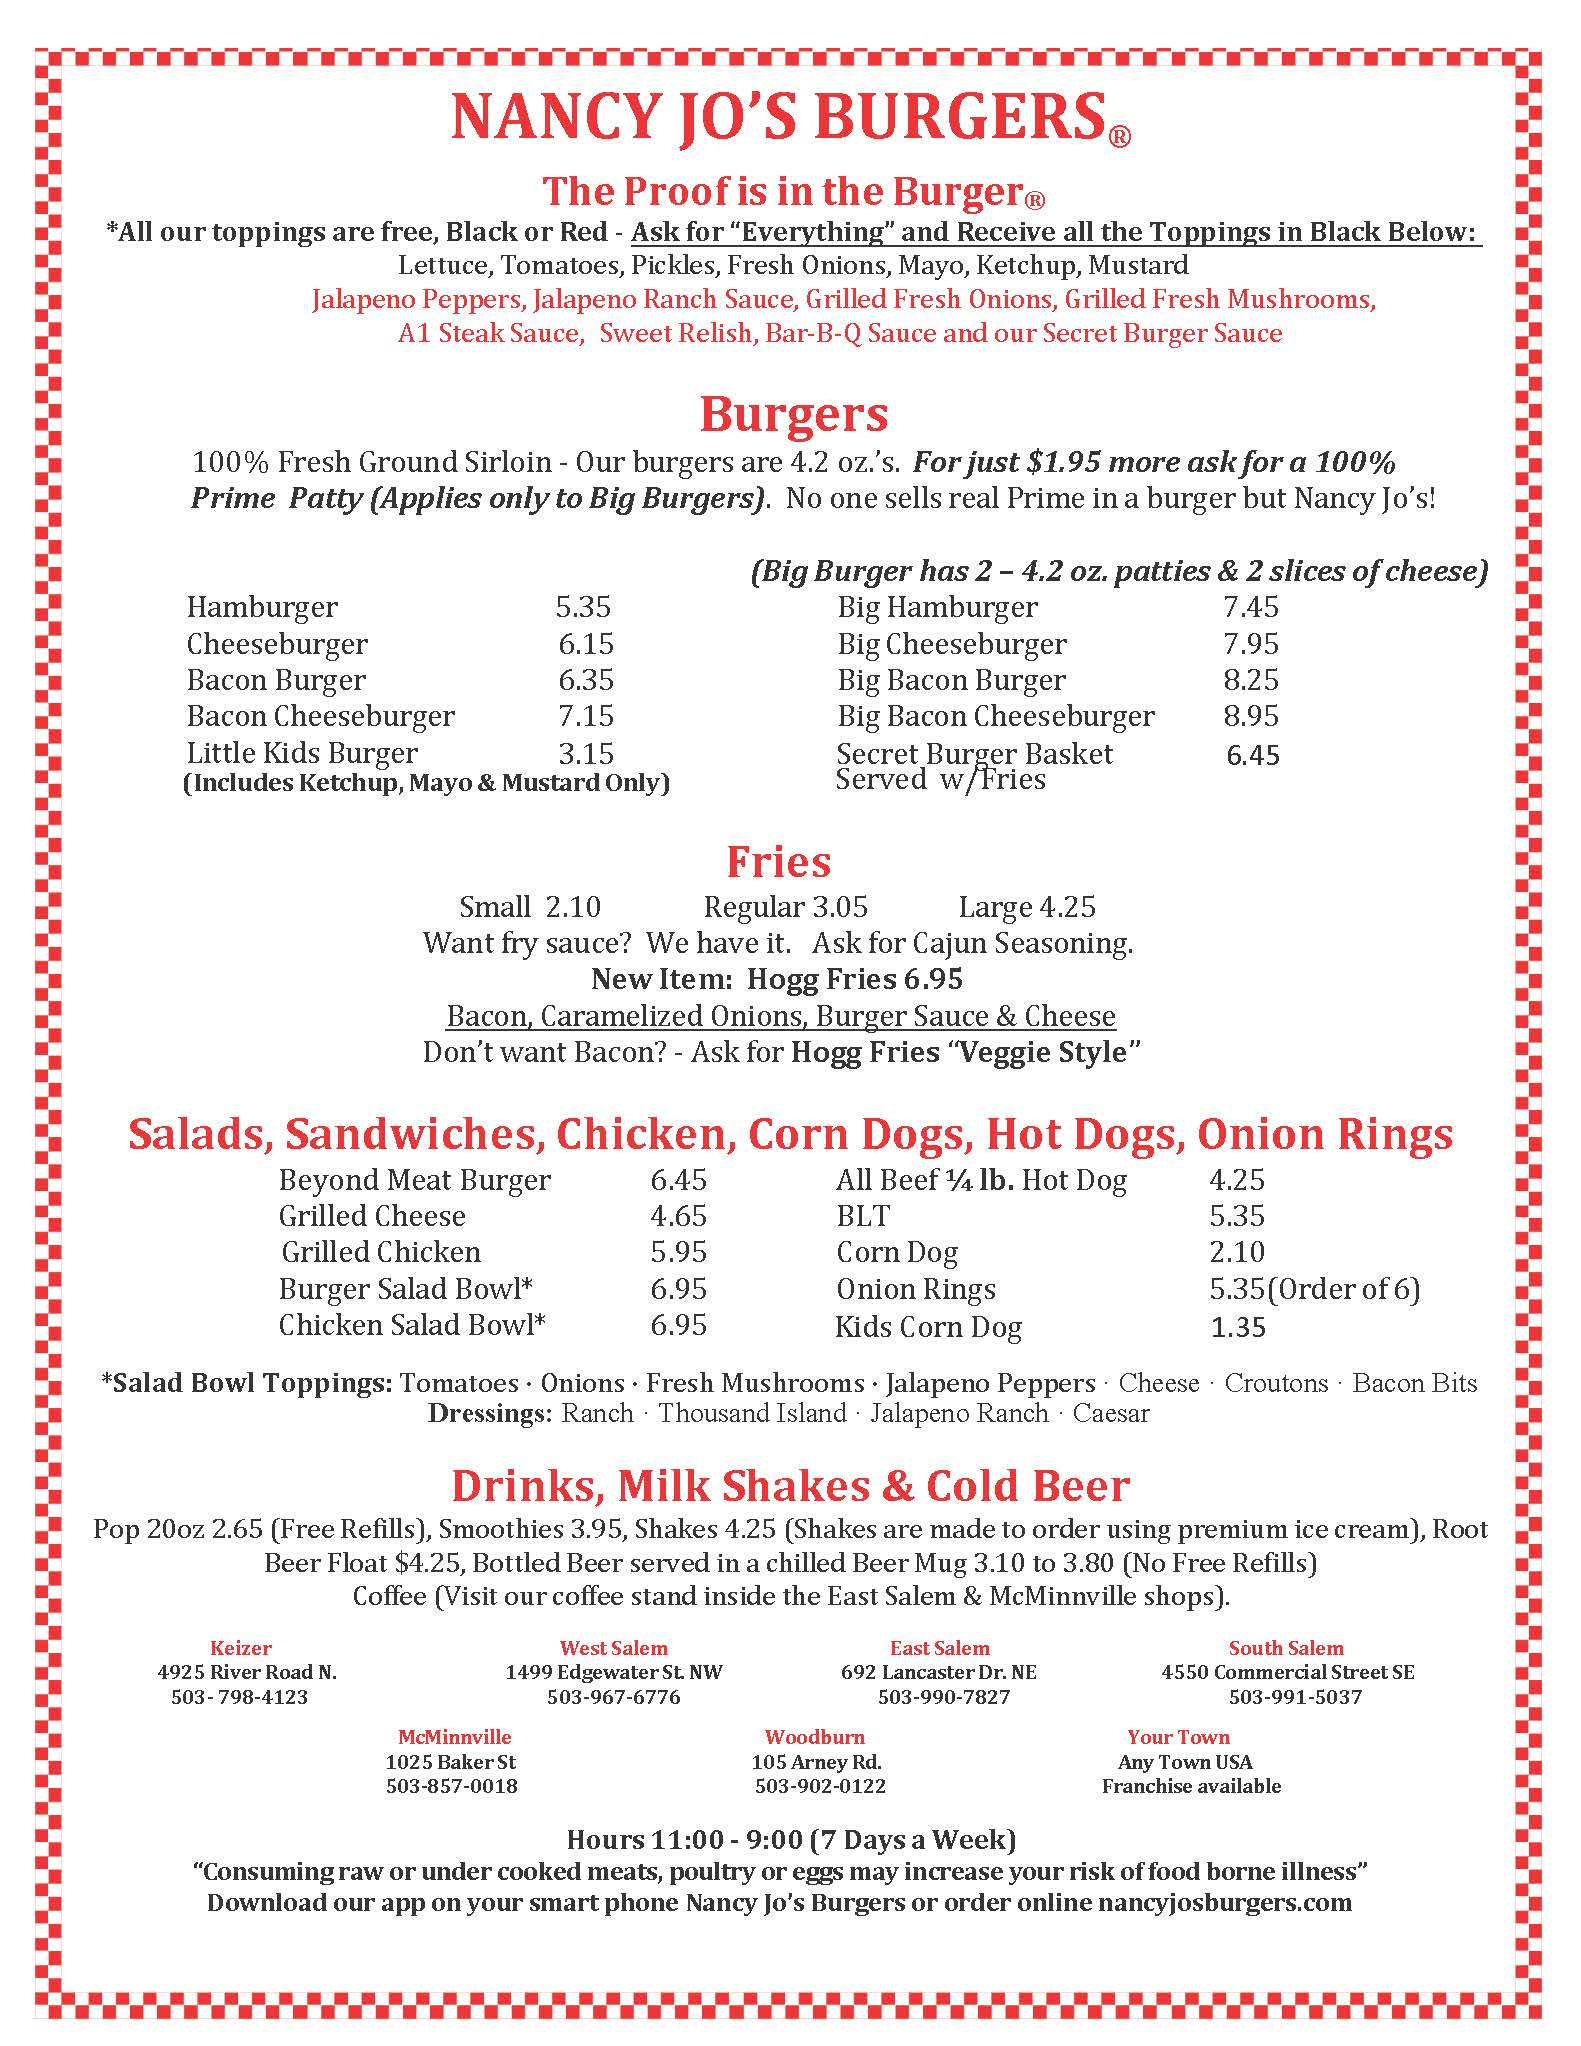 Menu - Nancy's Hand Crafted Burgers